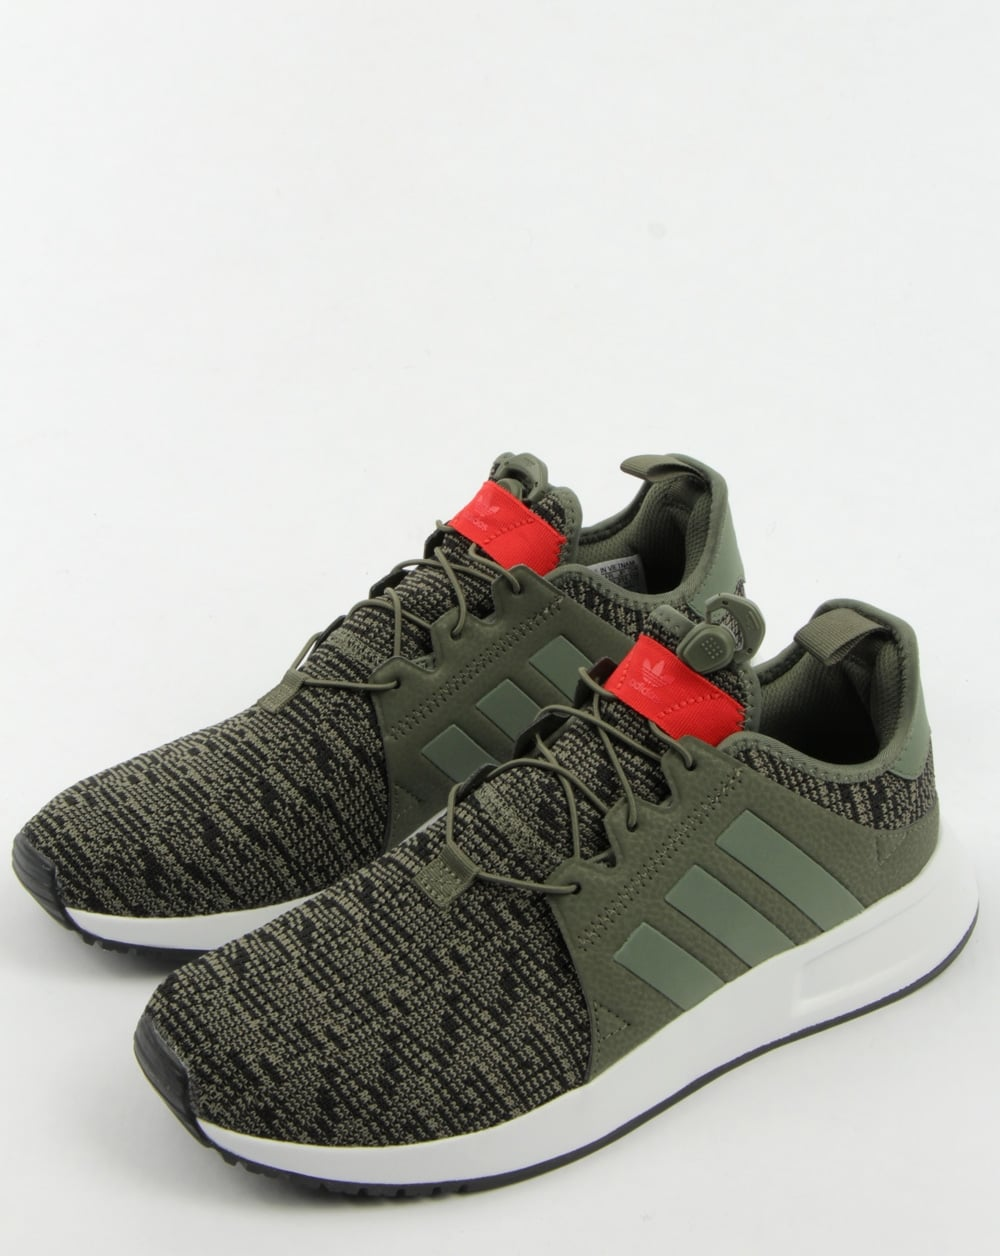 Adidas XPLR Trainers St Major Green/red